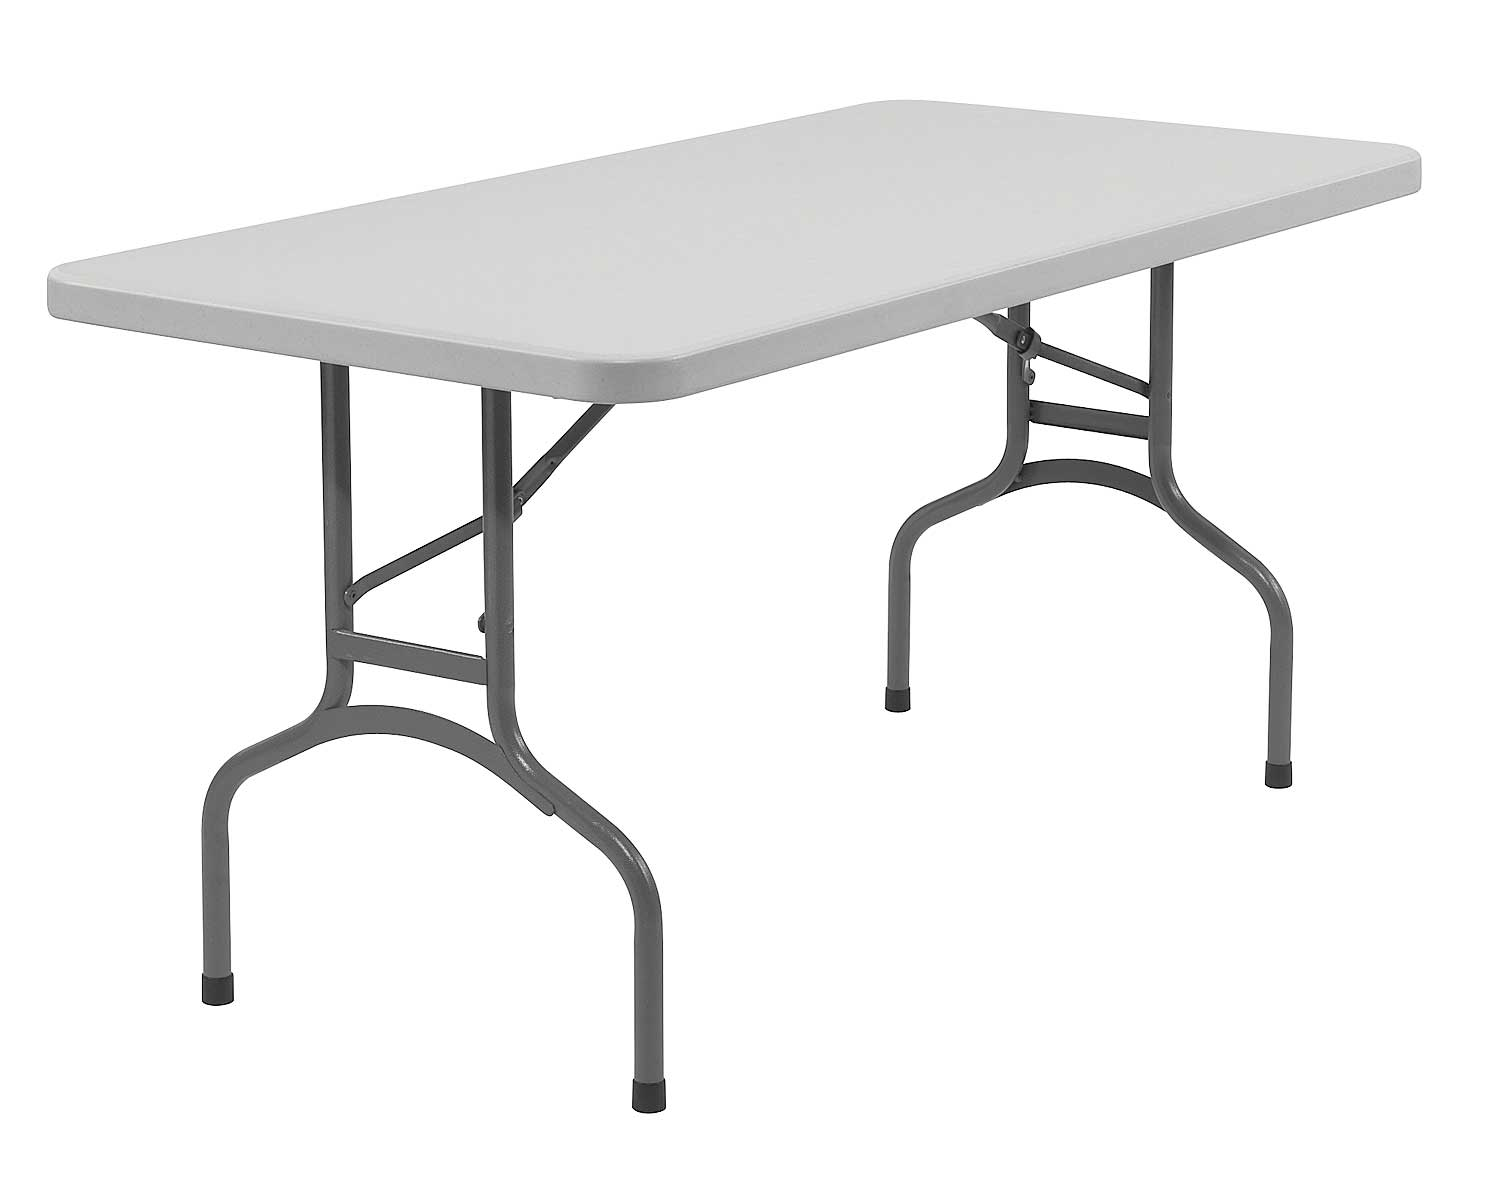 Durable ABS white plastic folding table